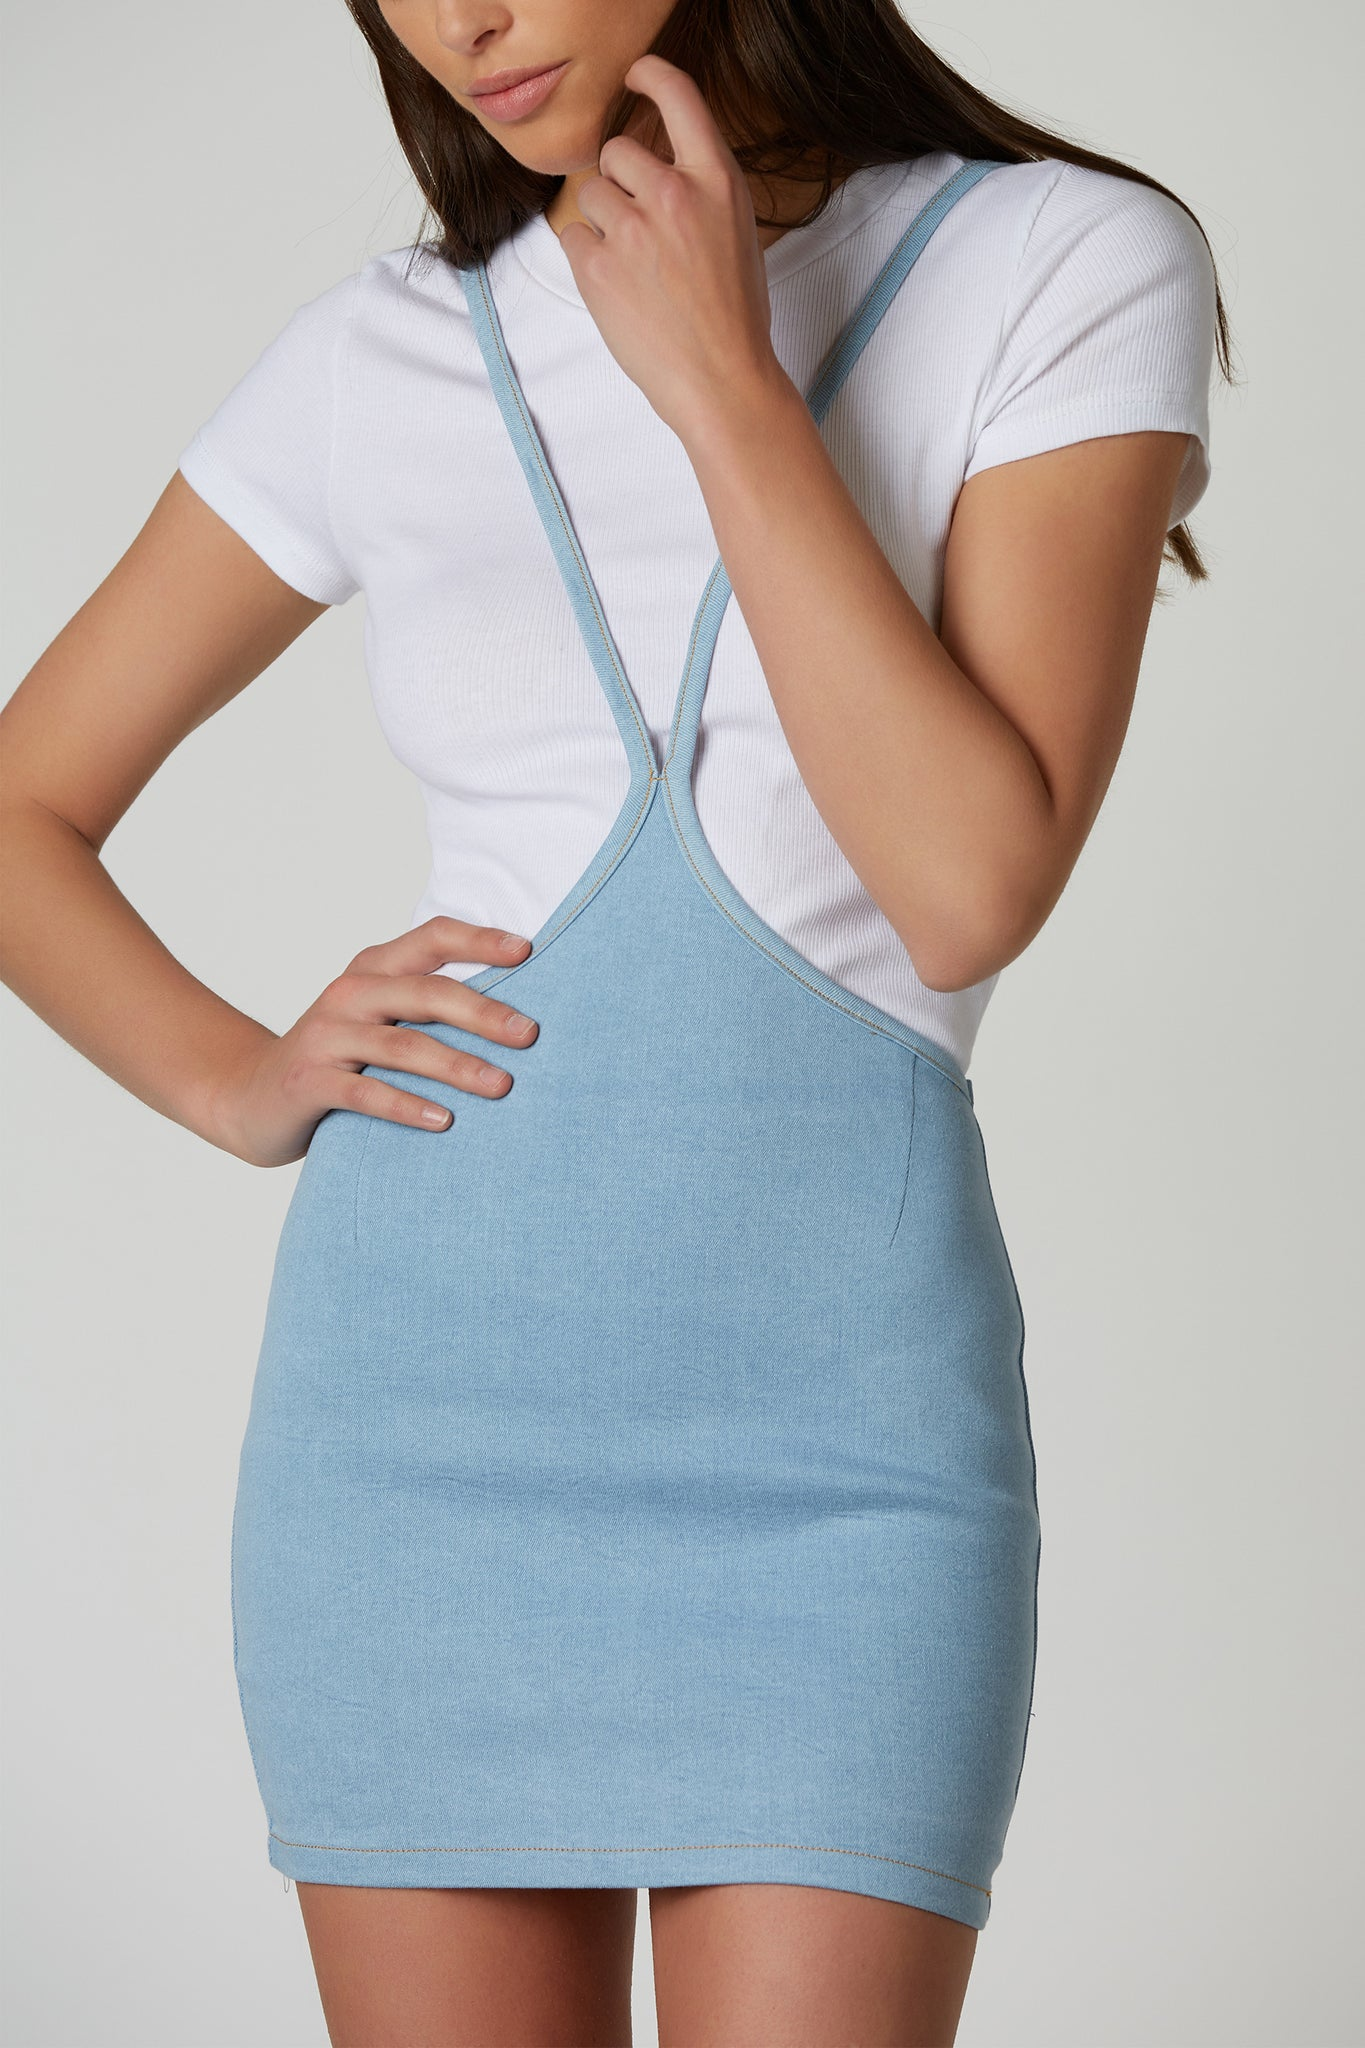 Dreamy Love Denim Overall Skirt